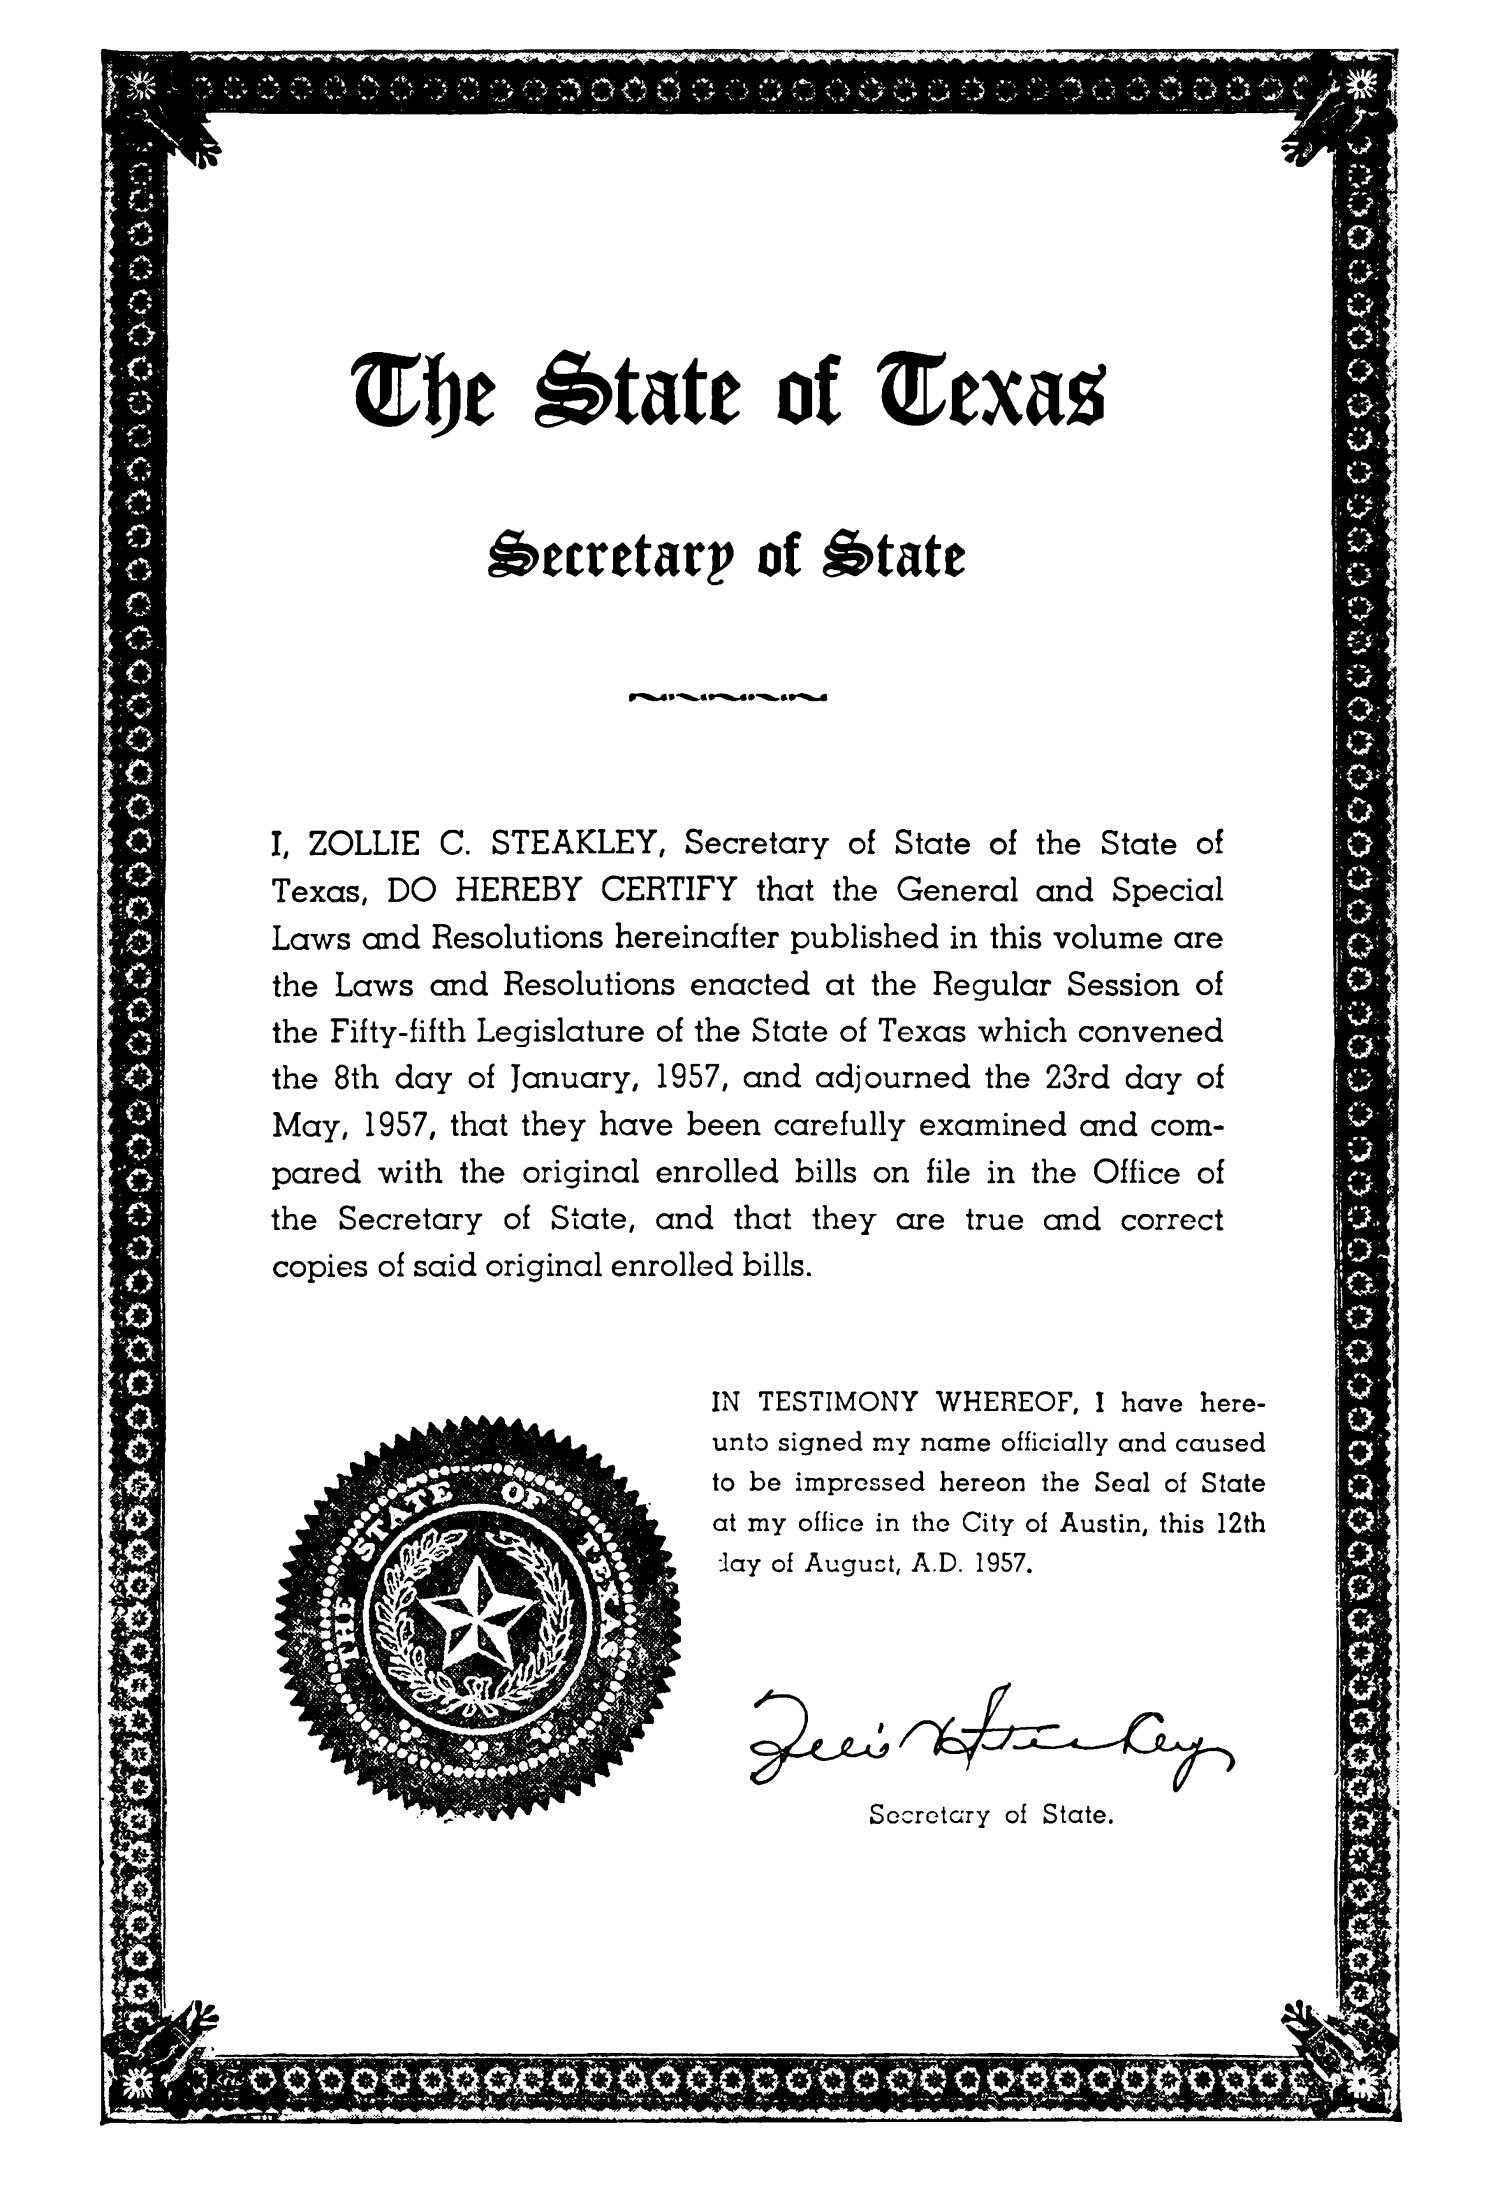 General and Special Laws of The State of Texas Passed By The Regular Session of the Fifty-Fifth Legislature                                                                                                      III